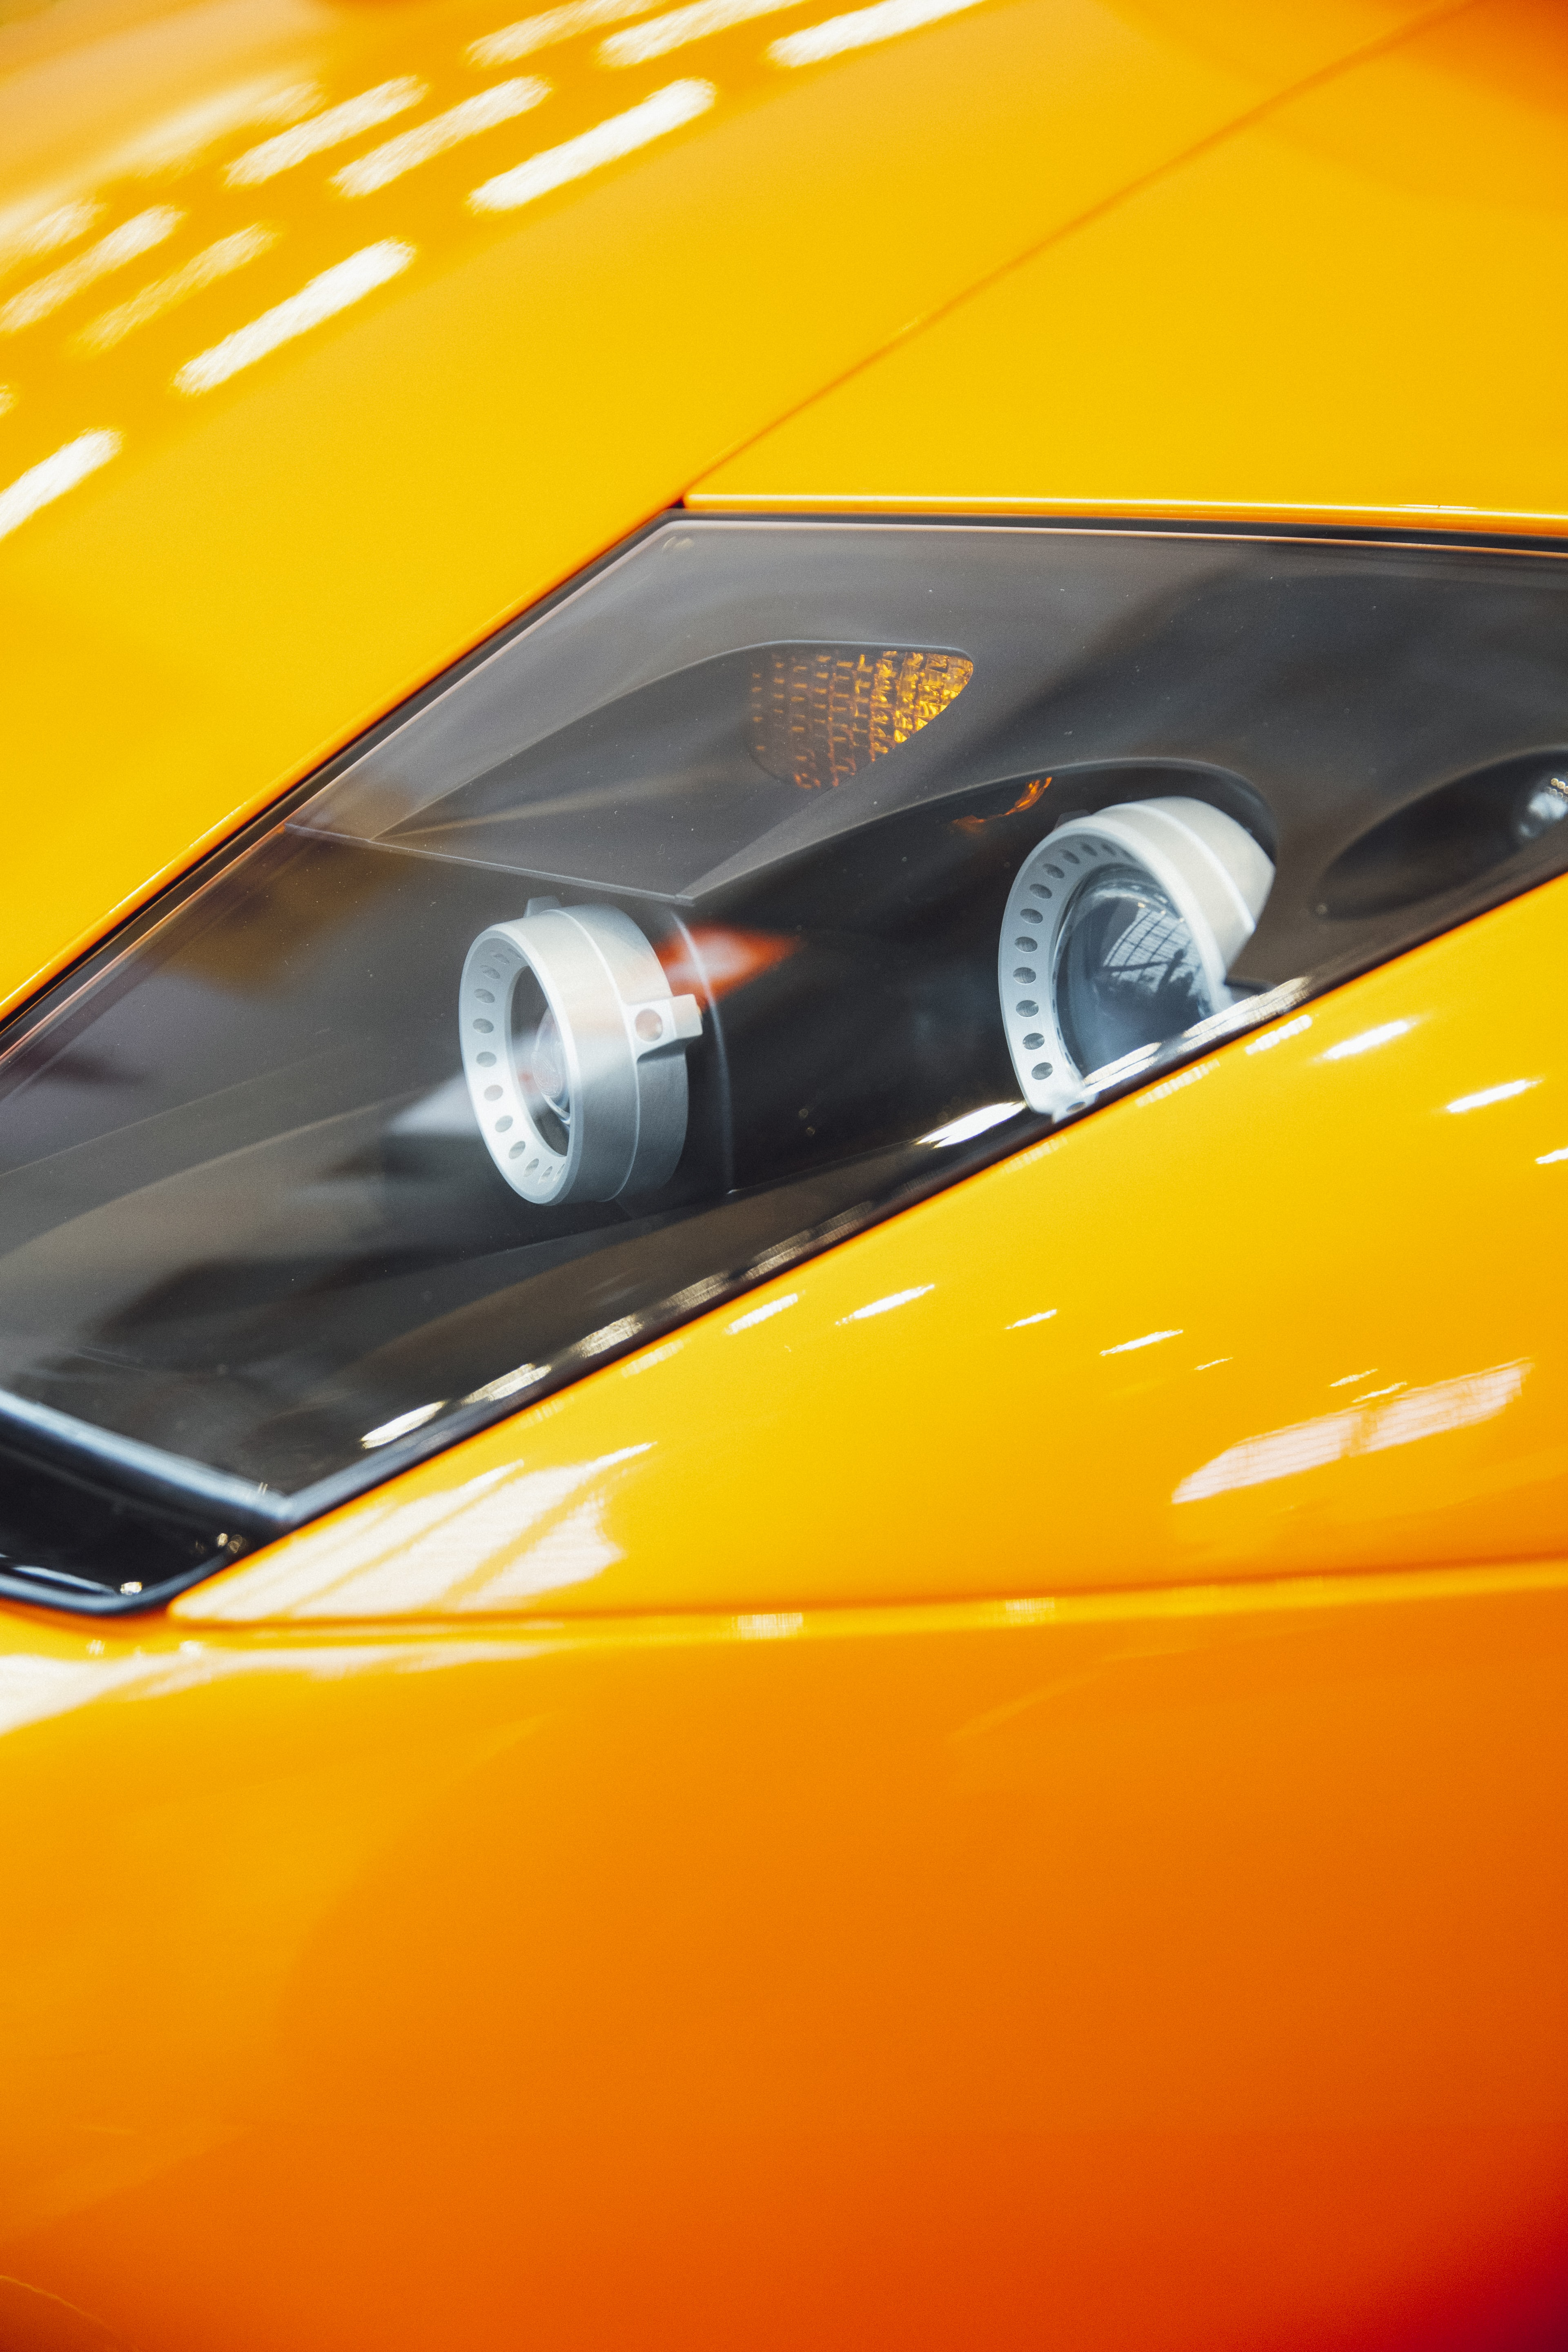 orange sports car with projector headlight